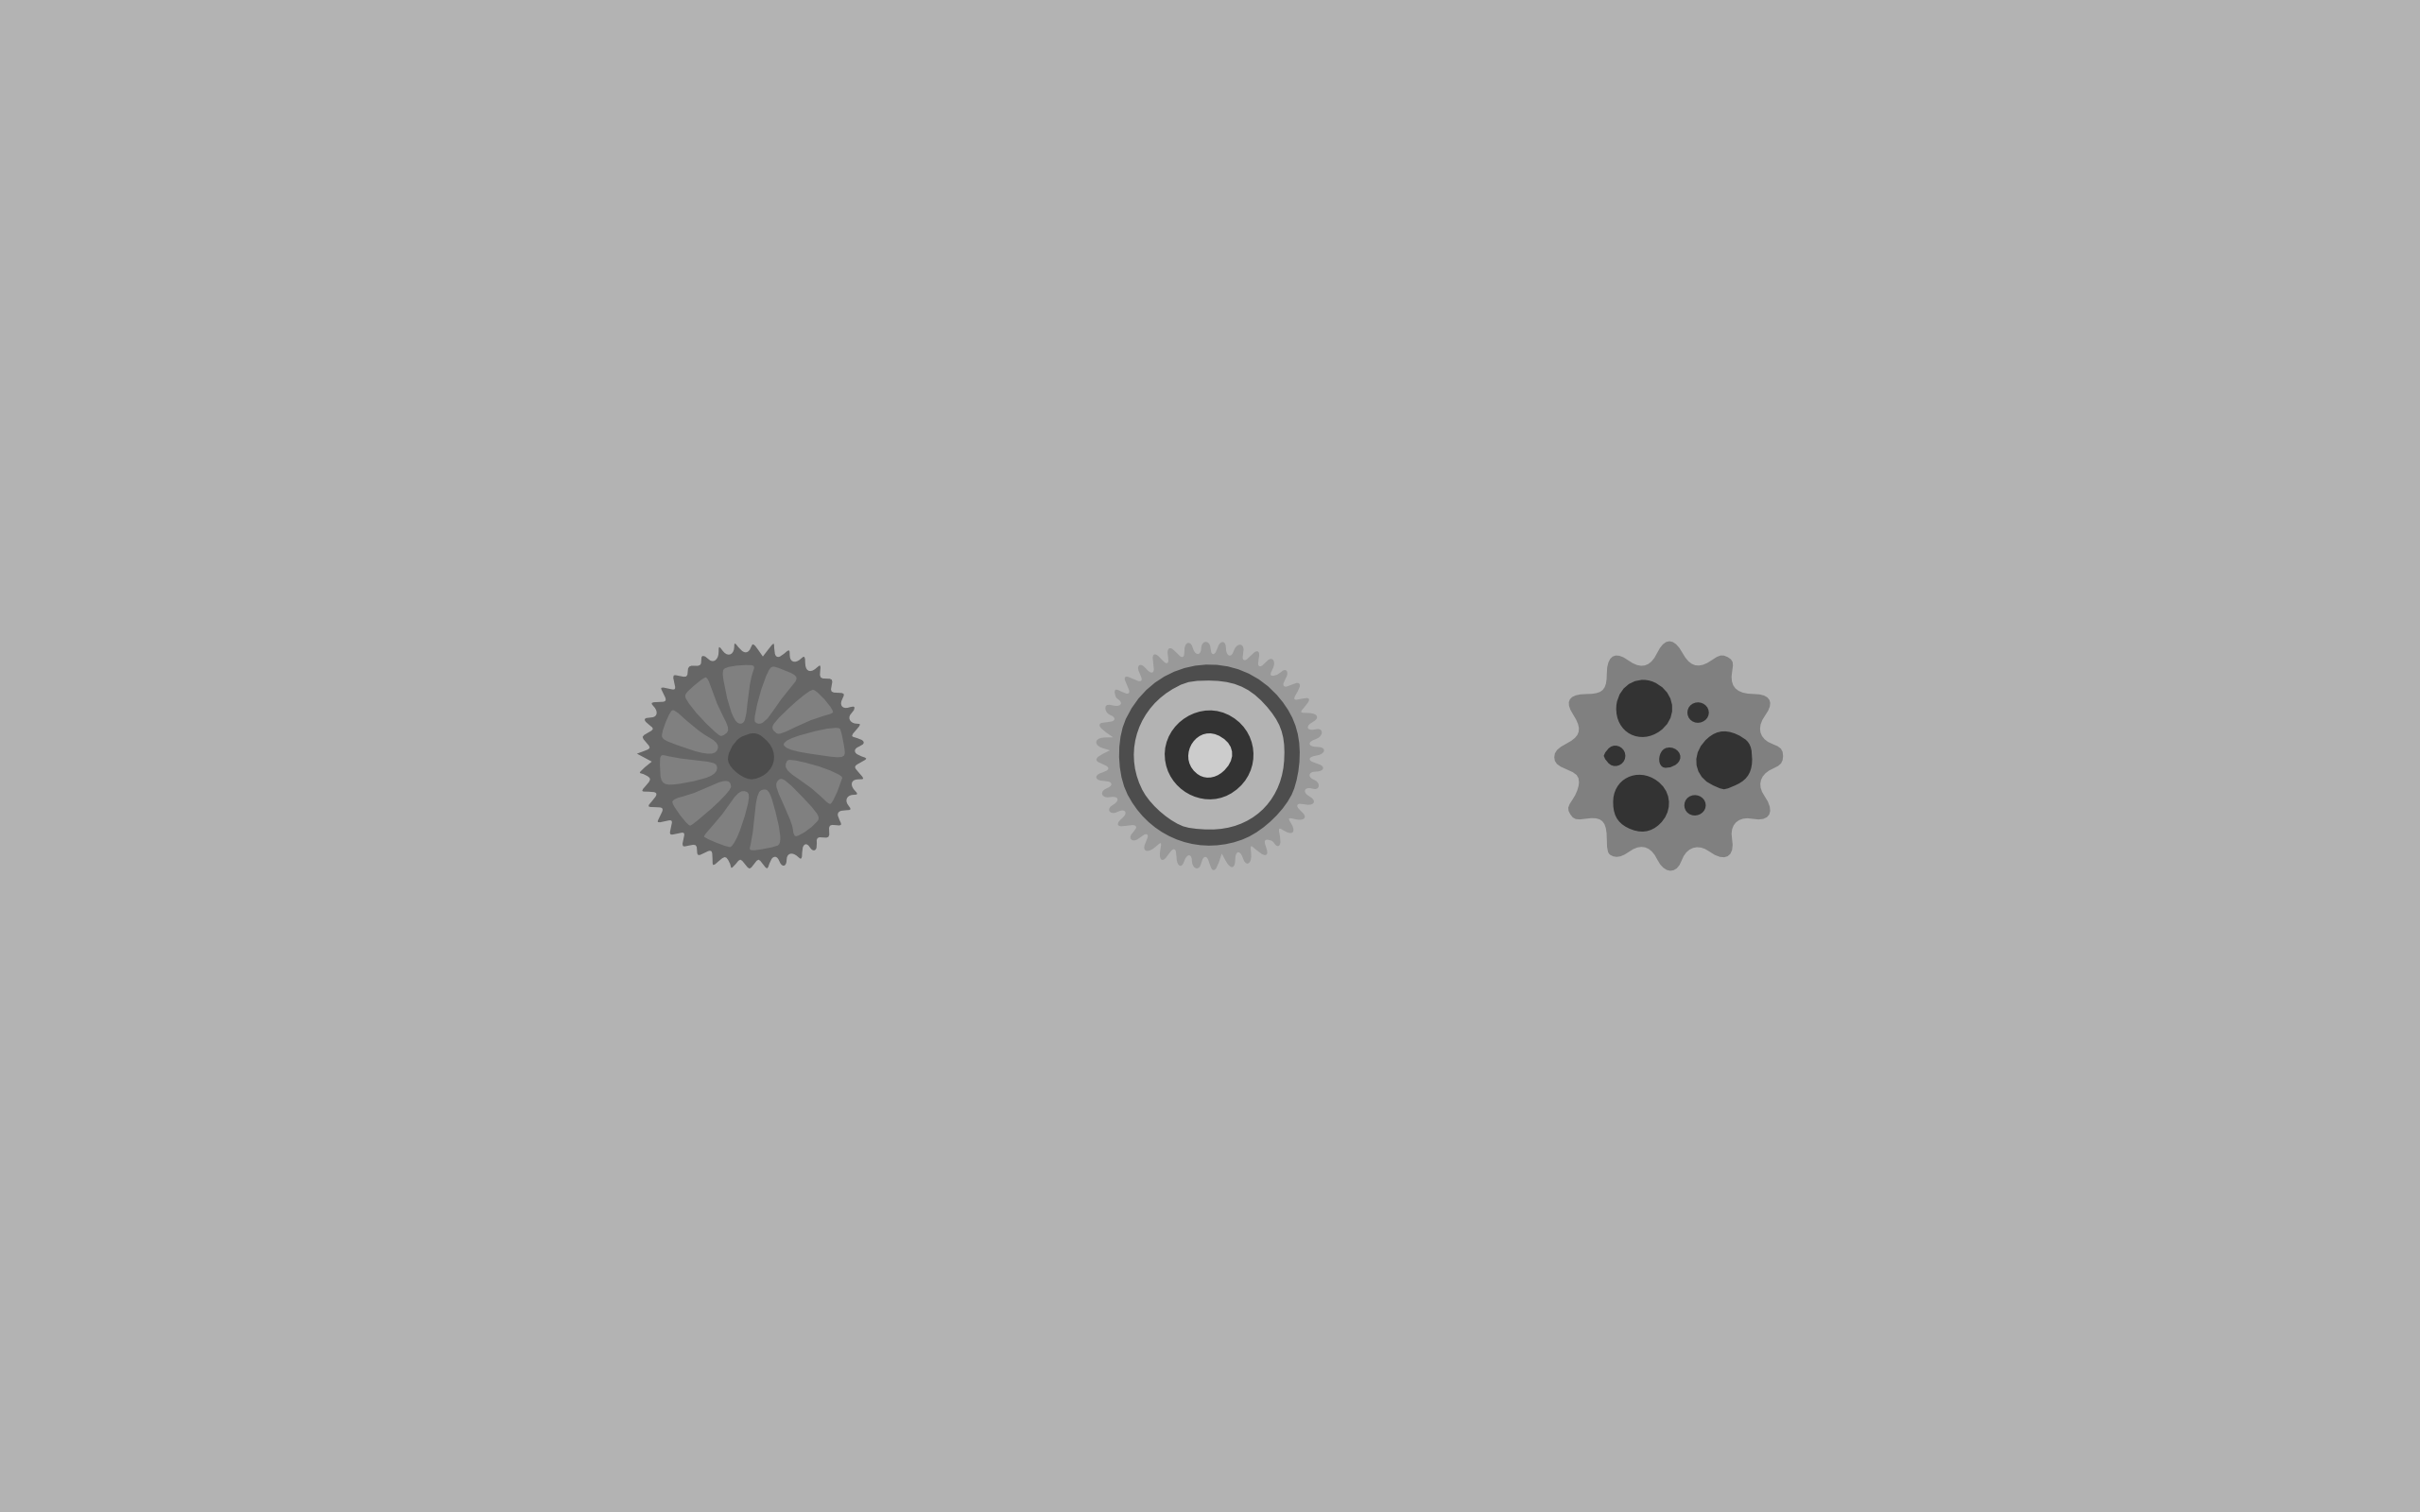 2560x1600 Minimalistic Mechanical Pieces Desktop Pc And Mac